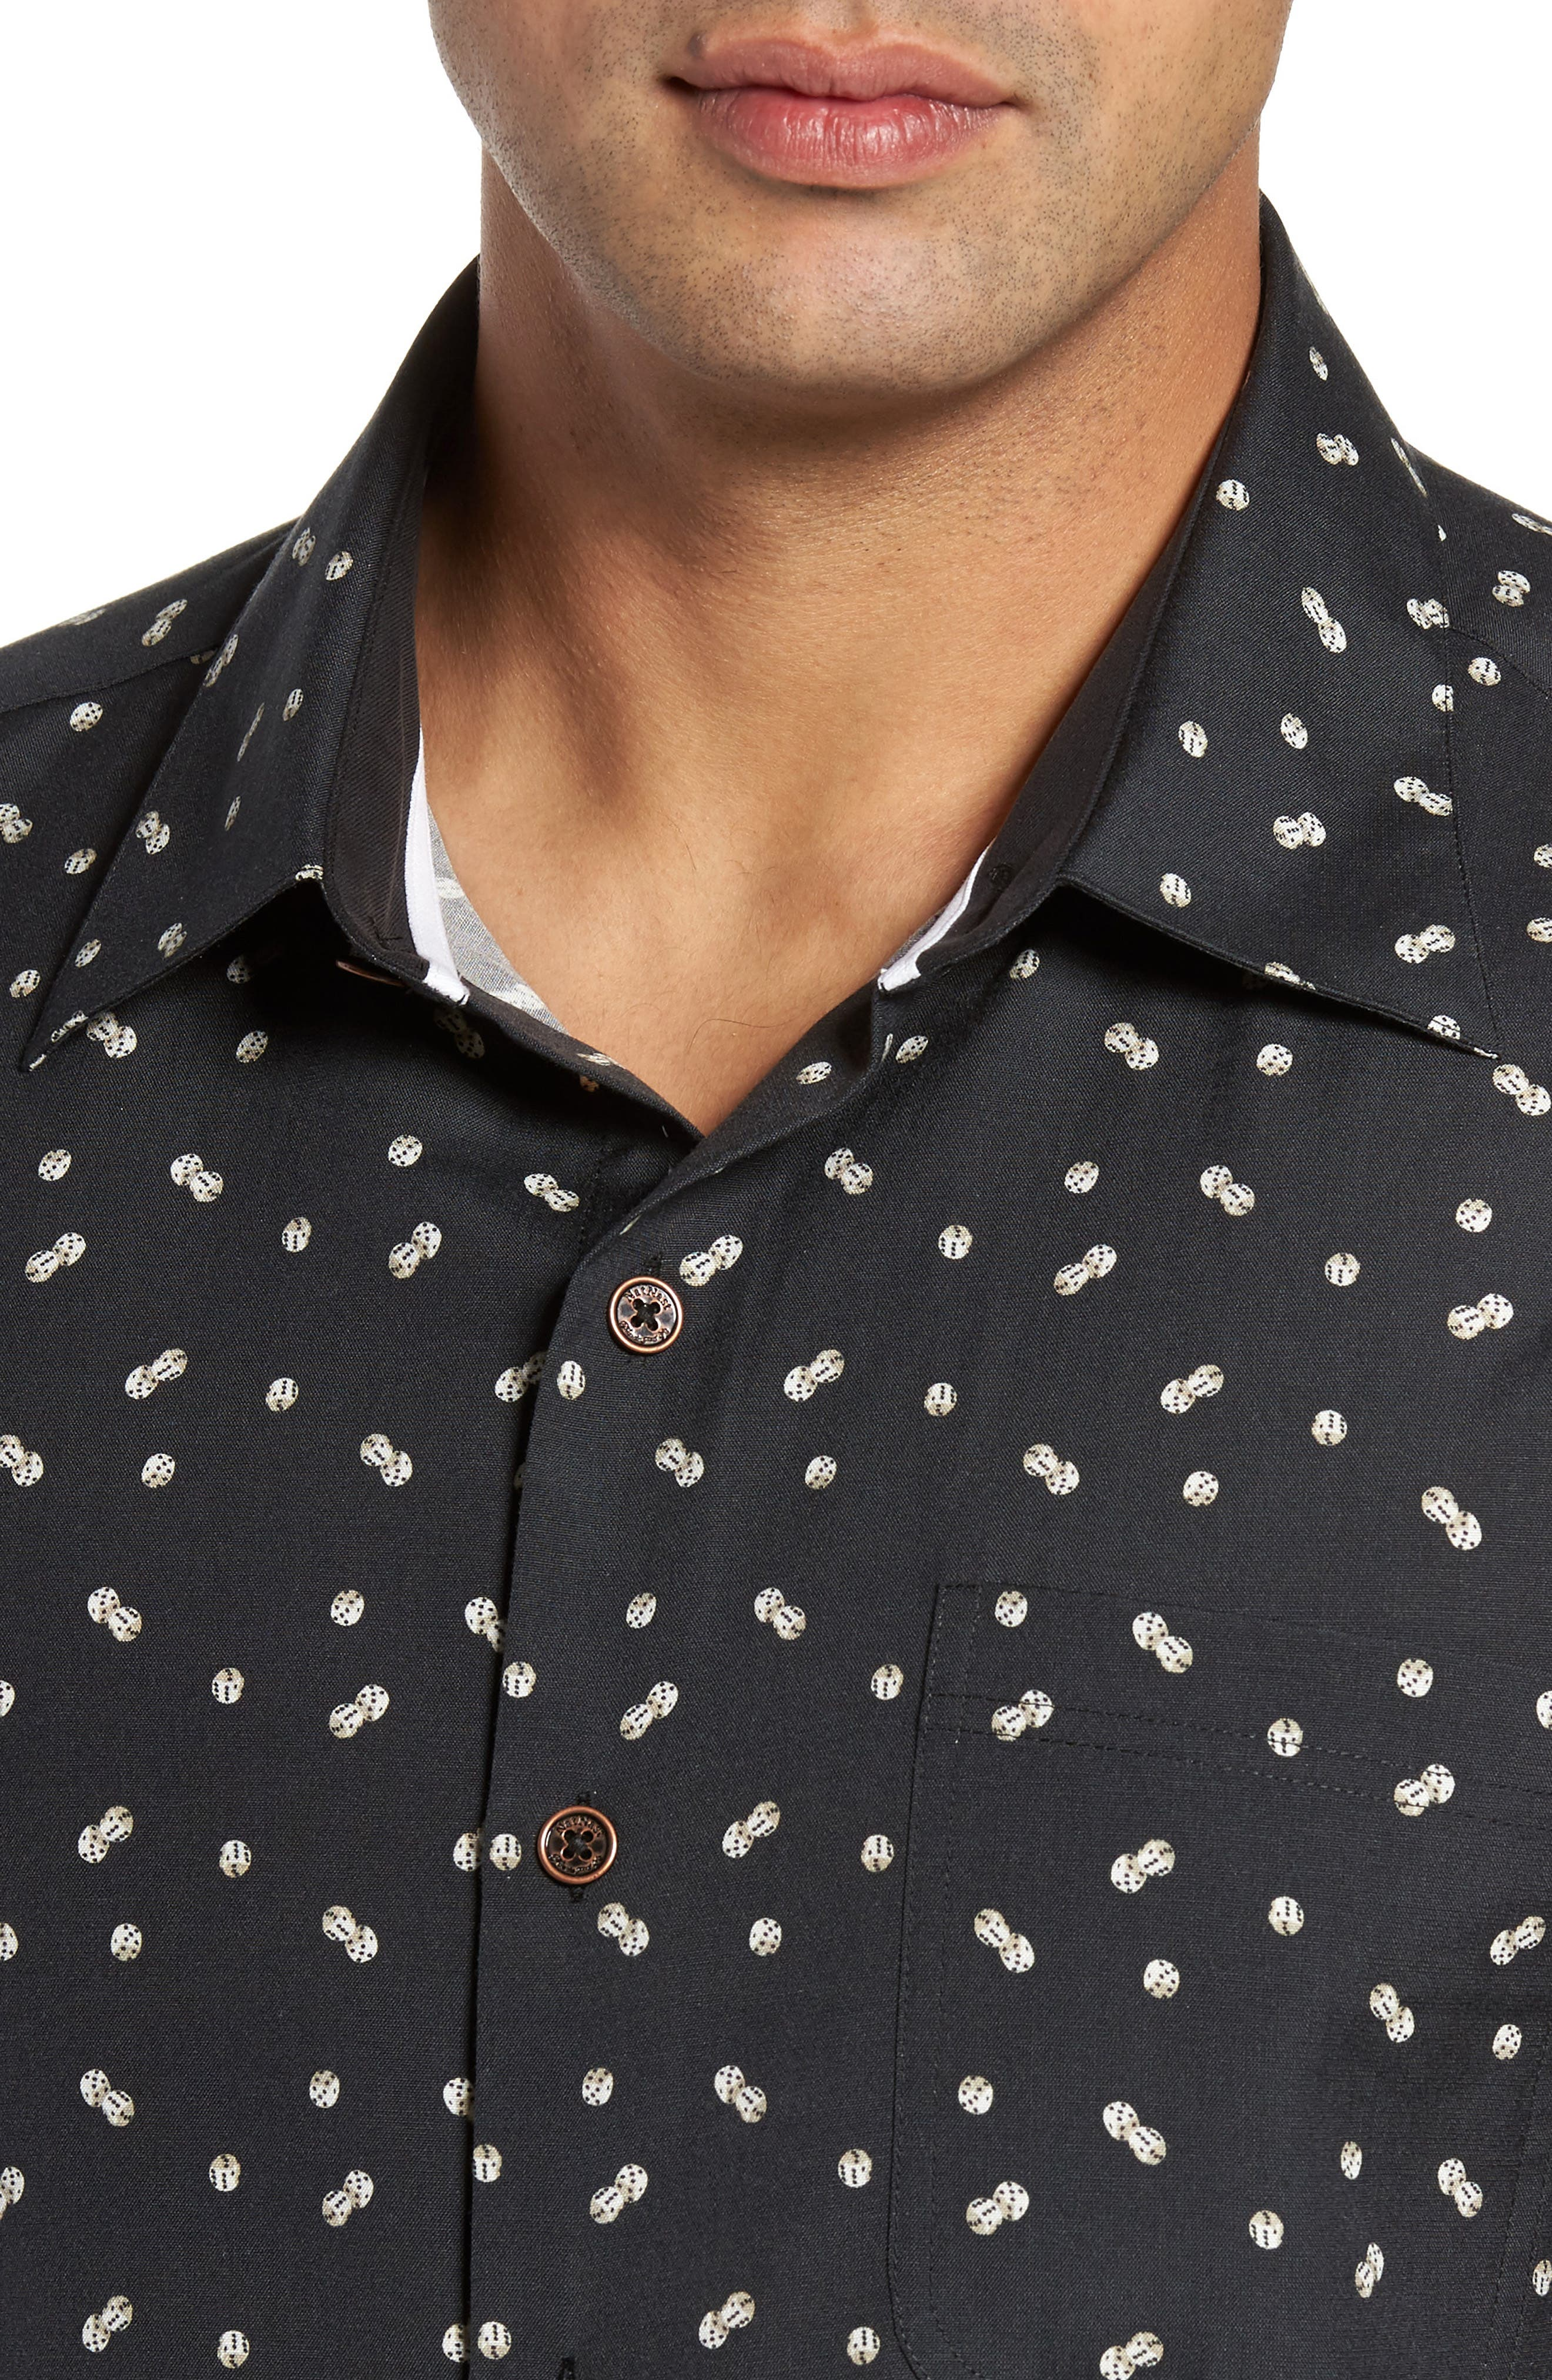 Dice Print Classic Fit Camp Shirt,                             Alternate thumbnail 4, color,                             Black